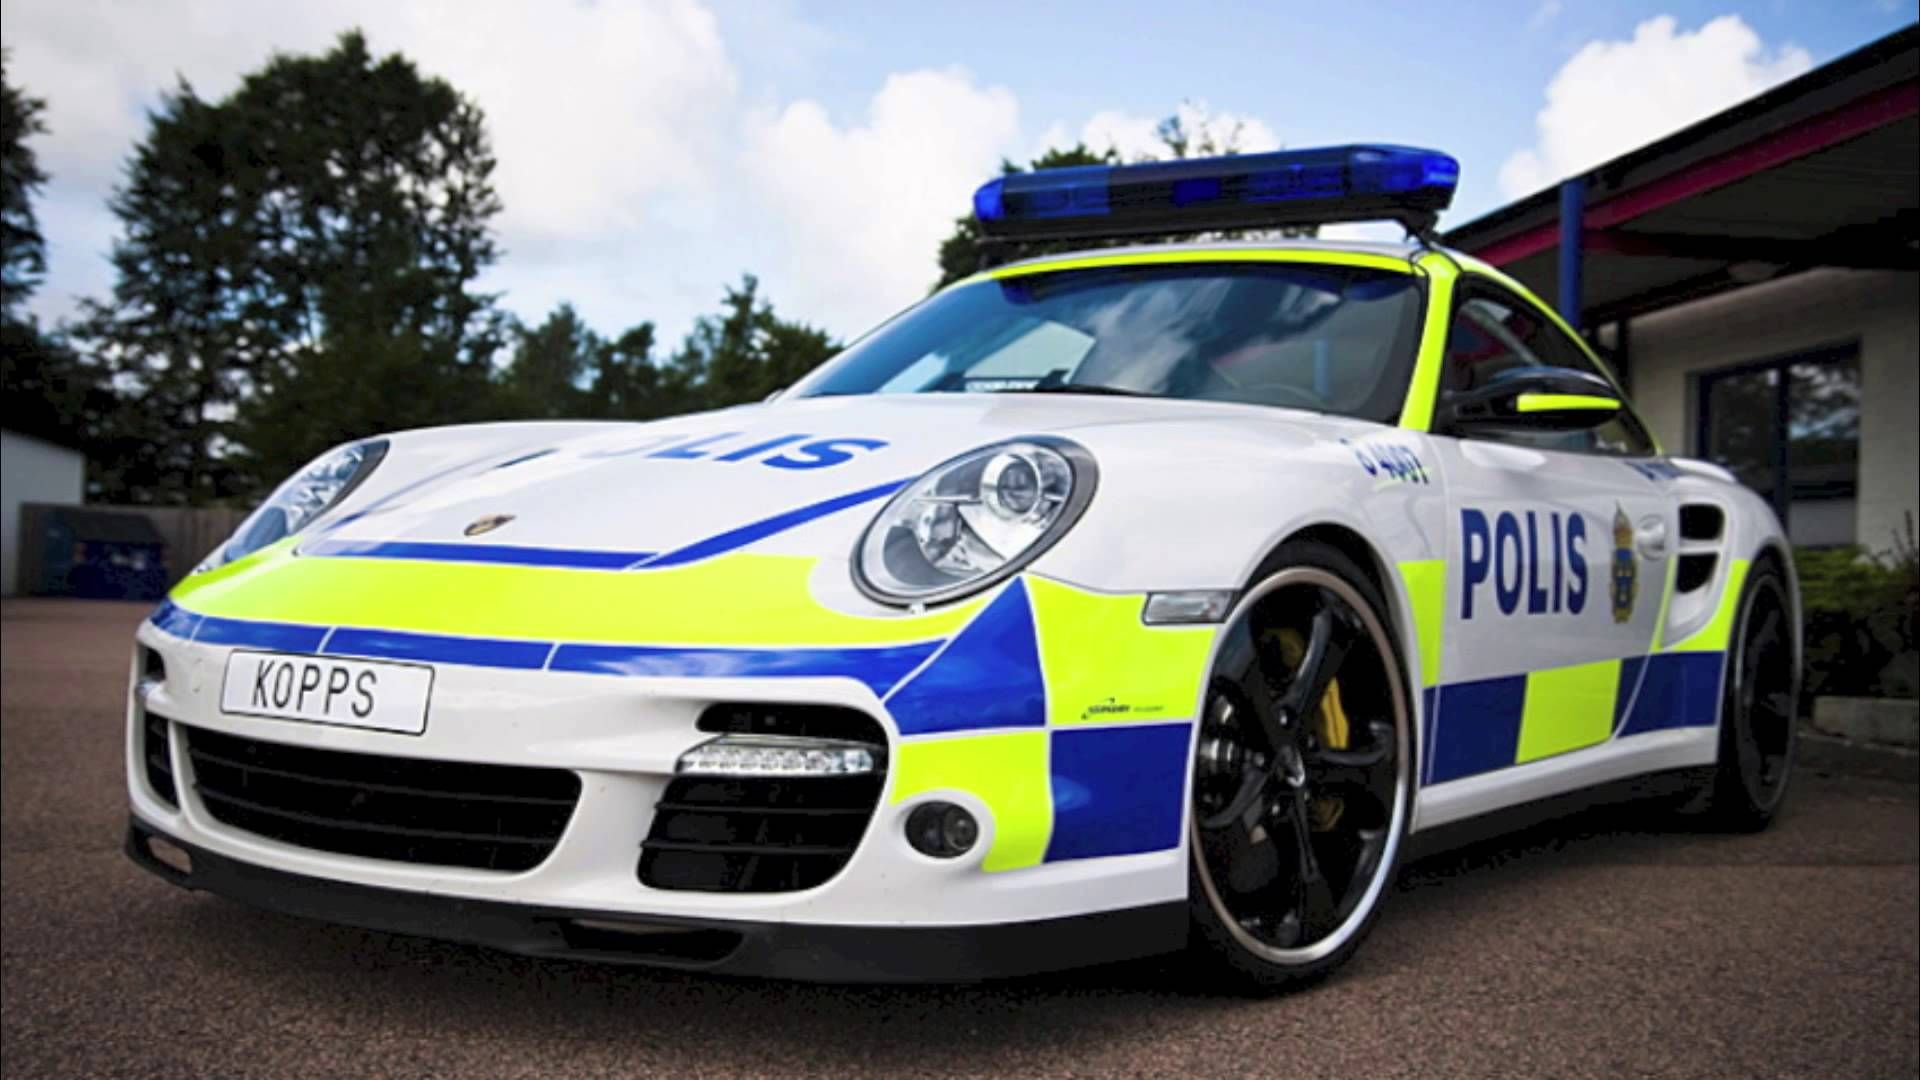 Pin by Andy foster on POLICE Police cars, Police, Car in